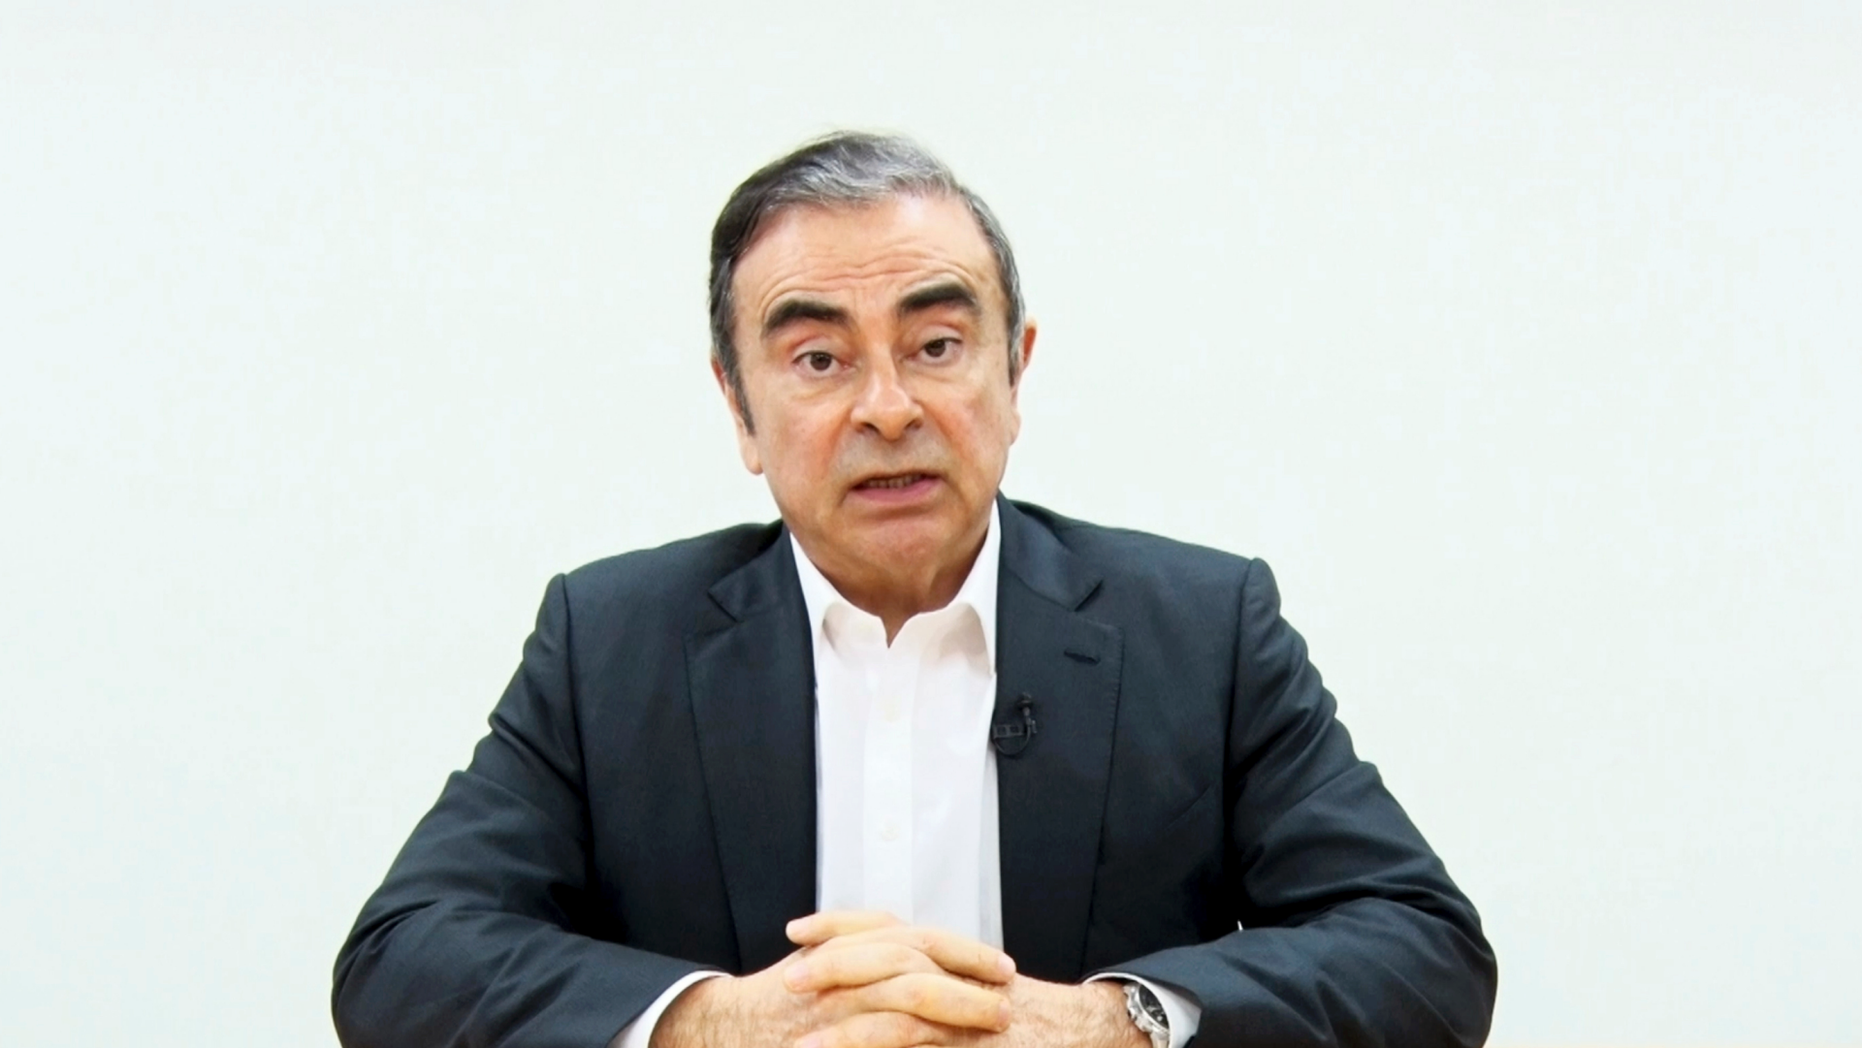 Carlos Ghosn Claims He's Conspiracy Victim Of